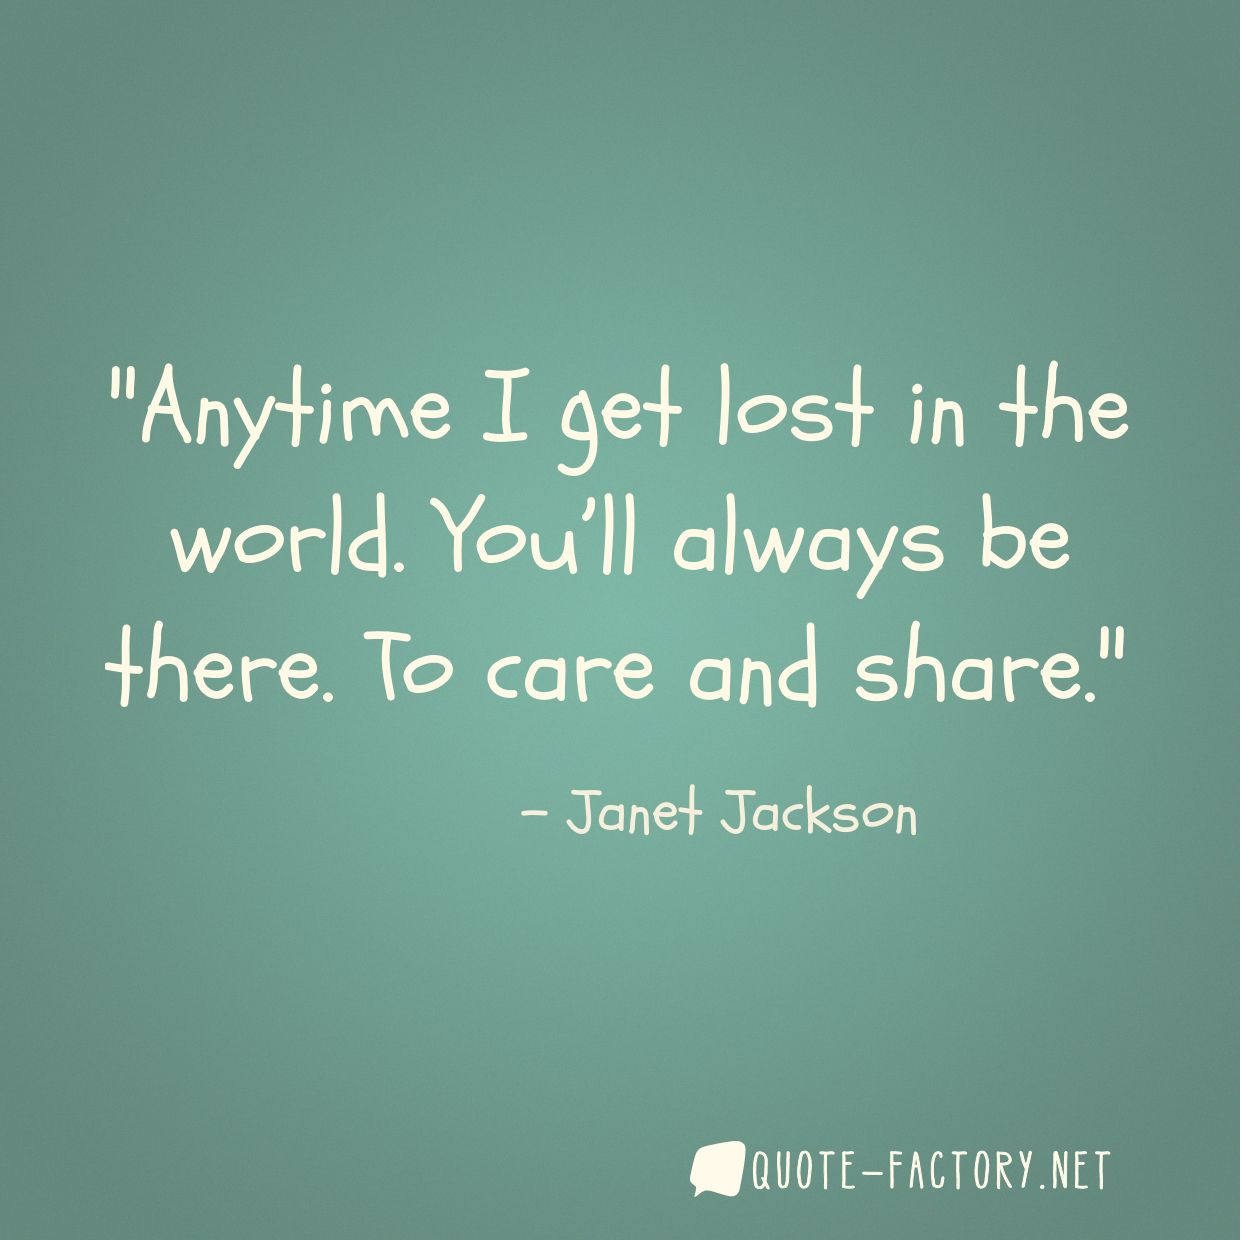 Anytime I get lost in the world. You'll always be there. To care and share.